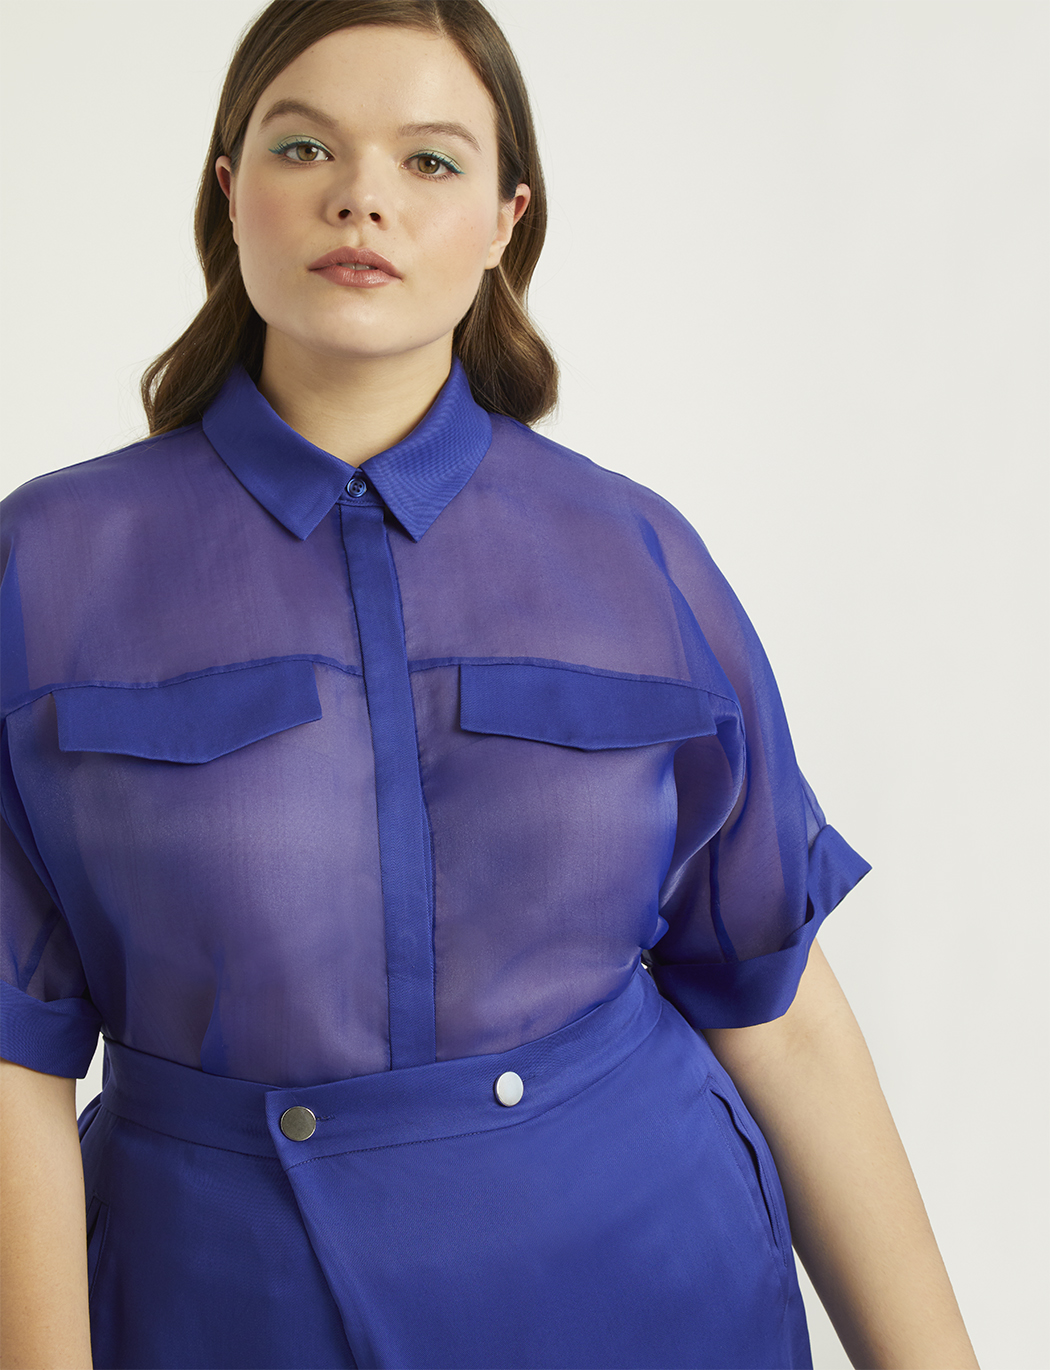 Priscilla Ono x ELOQUII Sheer Collared Shirt